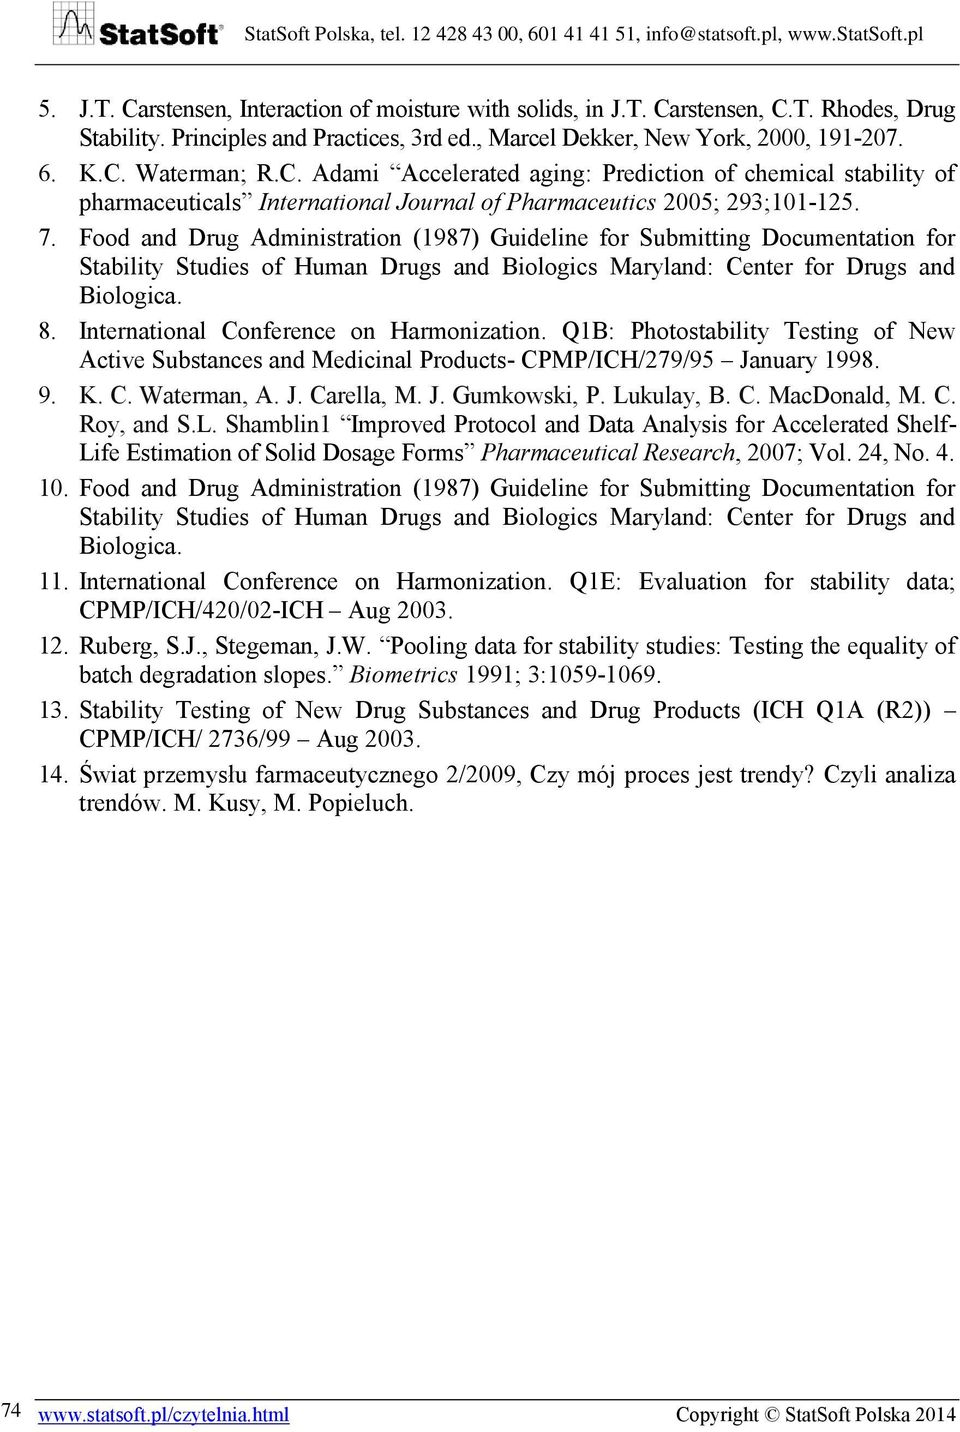 Food and Drug Administration (1987) Guideline for Submitting Documentation for Stability Studies of Human Drugs and Biologics Maryland: Center for Drugs and Biologica. 8.